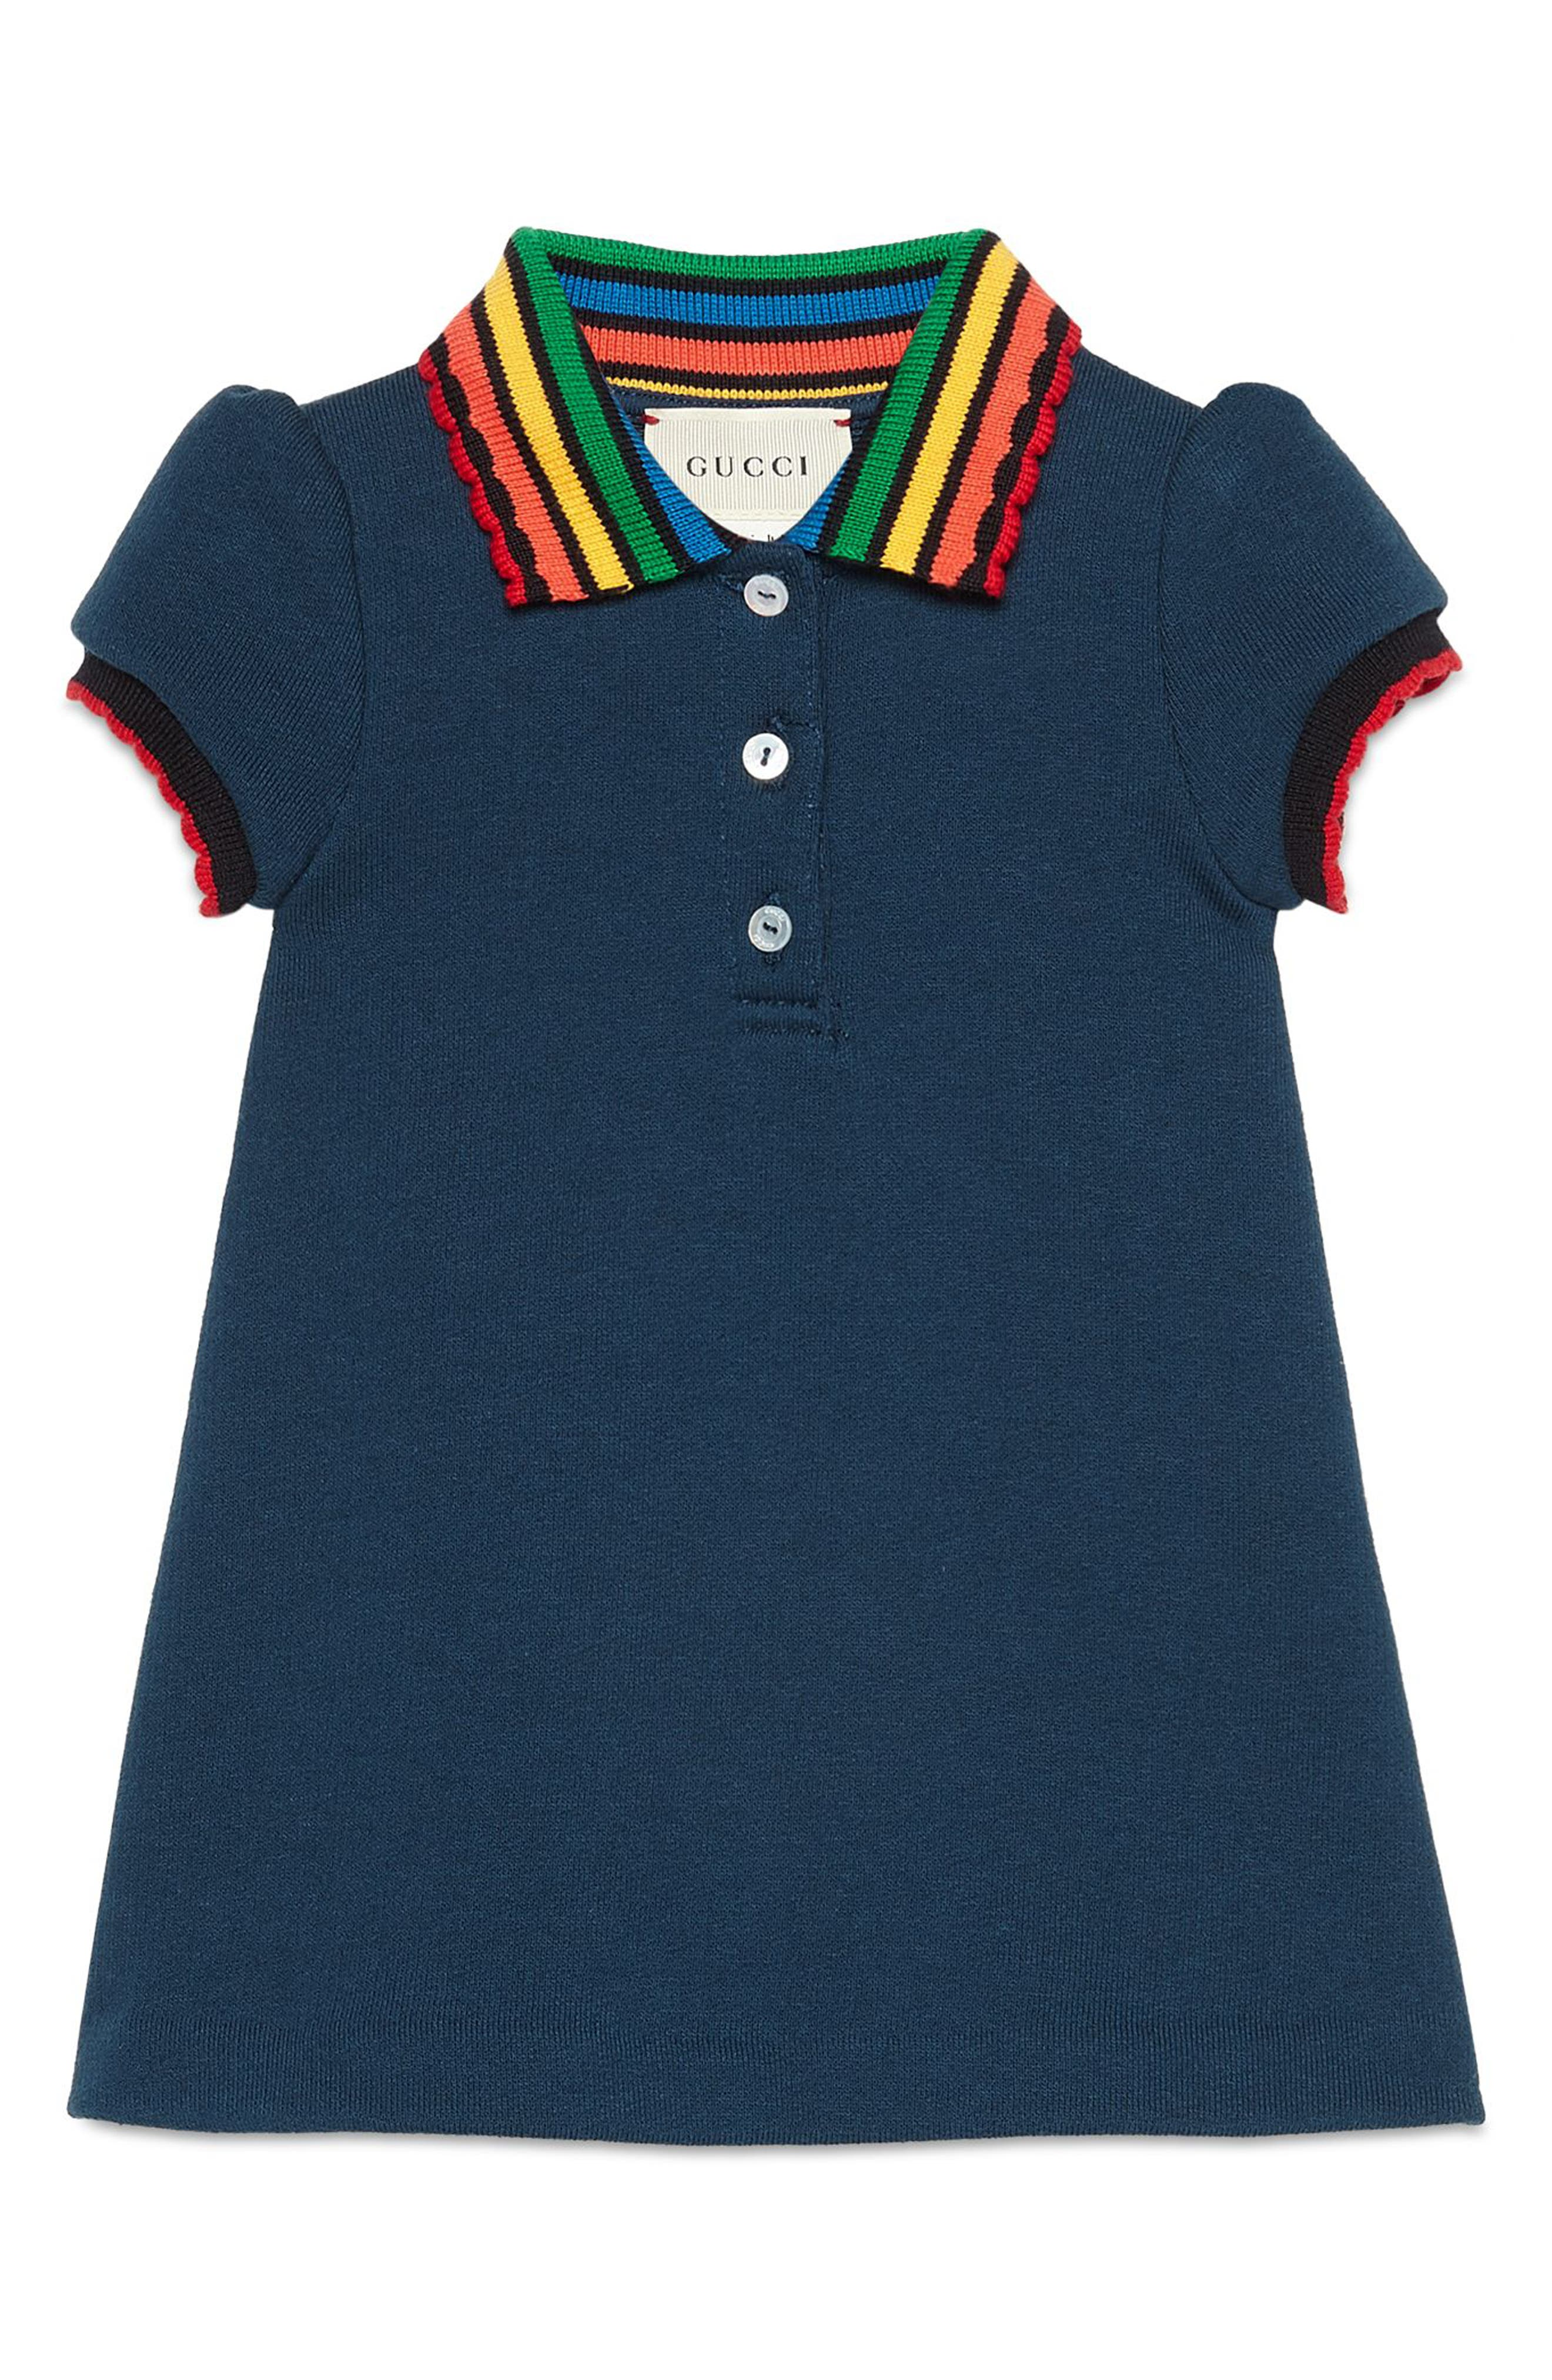 GUCCI Fawns Polo Dress, Main, color, PRUSSIAN BLUE/ MULTIC